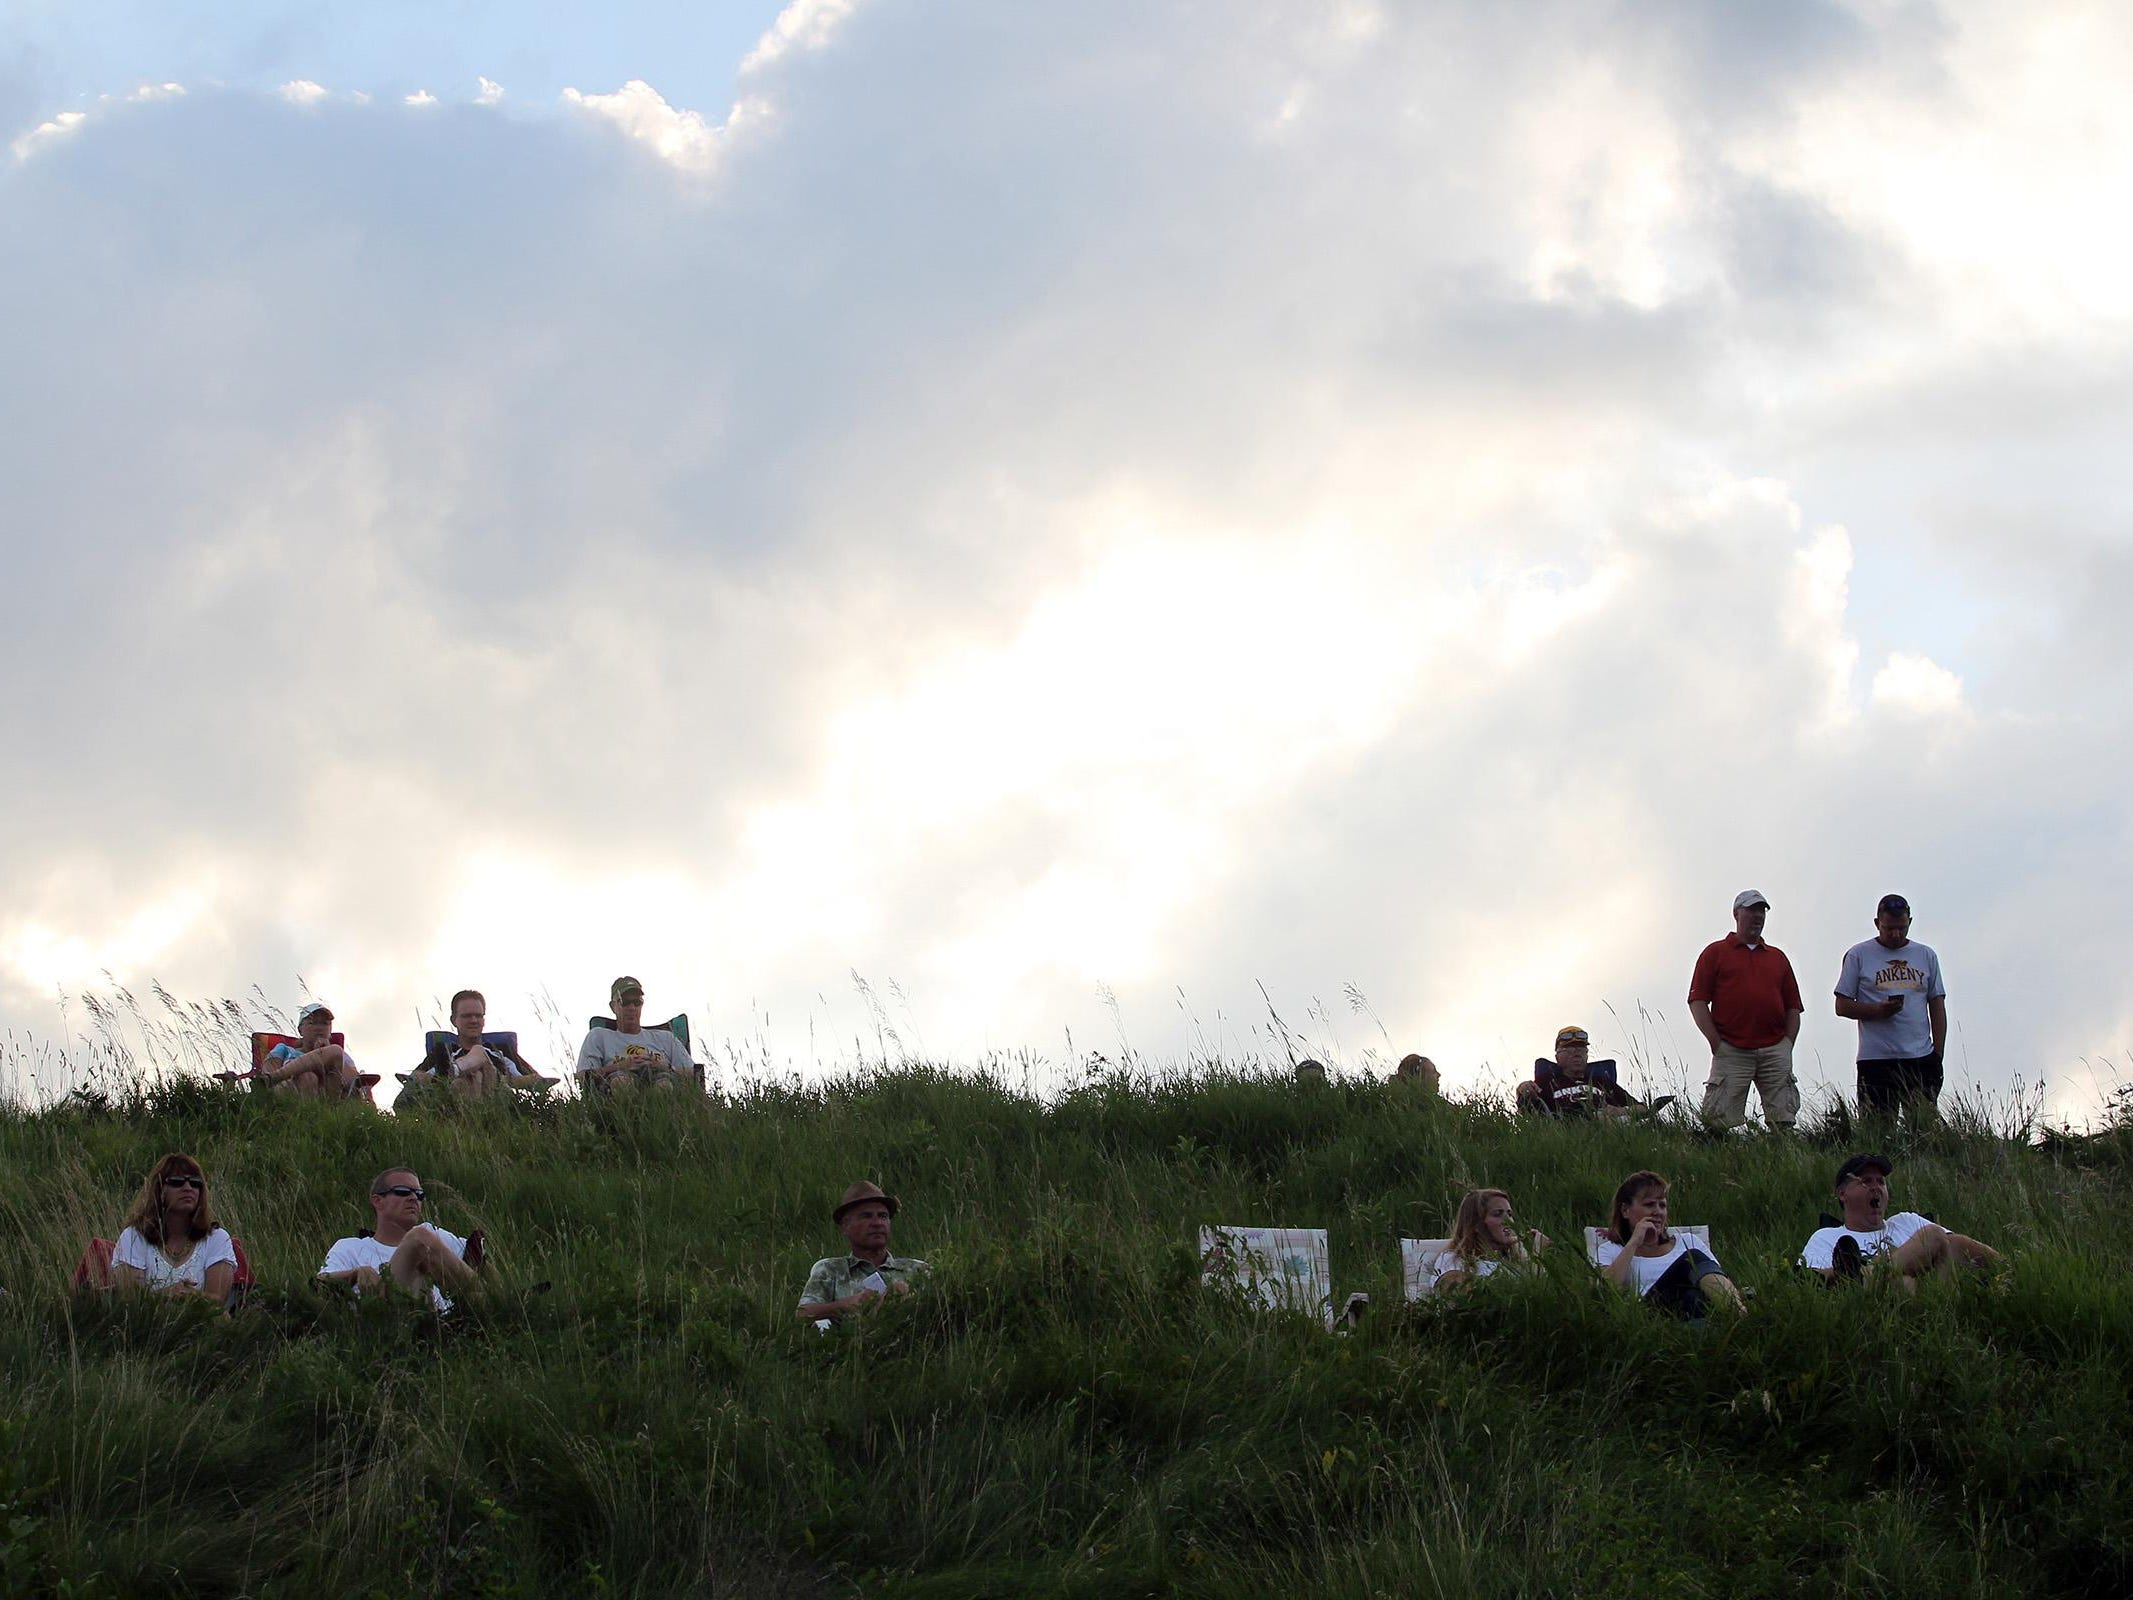 Spectators watch the Class 5A regional championship game between West High and Ankeny at West High on Tuesday, July 14, 2015. Ankeny won, 3-1, to head to state. David Scrivner / Iowa City Press-Citizen